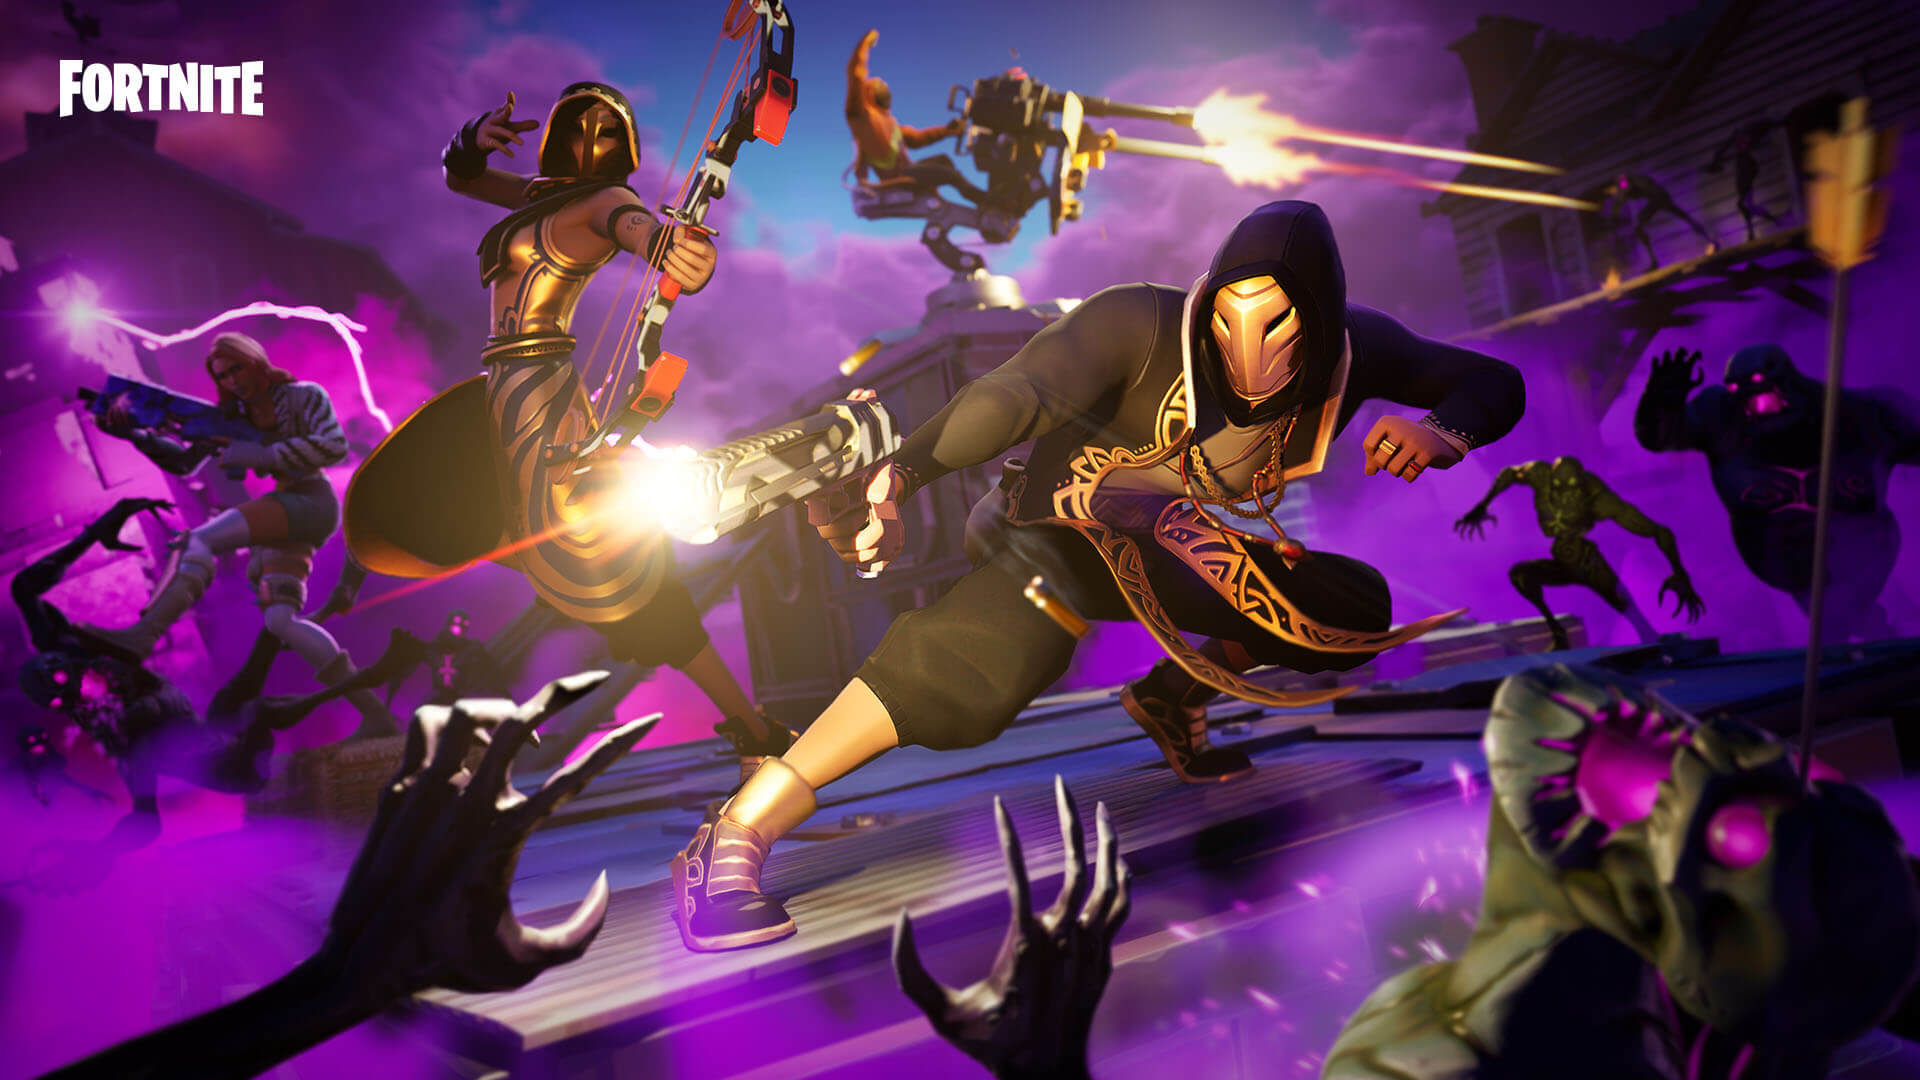 Fortnite v9.21 Patch Notes – Proximity Grenade Launcher, Horde Rush mode, and more